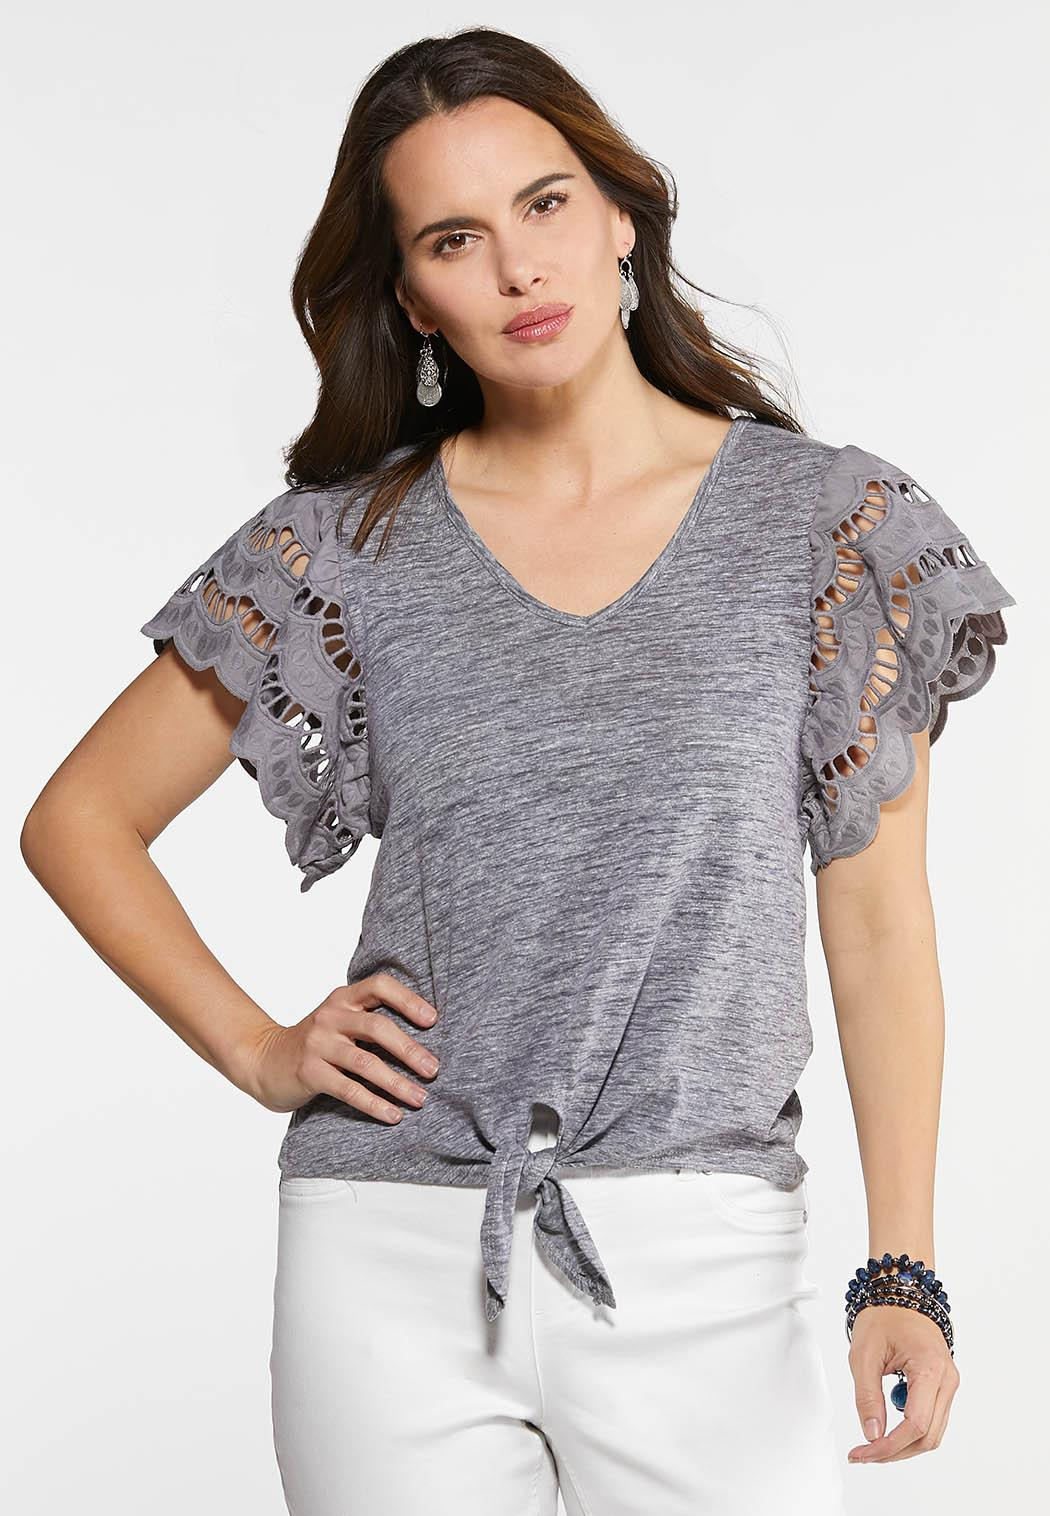 ad69cc0b450 Plus Size Eyelet Flutter Sleeve Top Tees & Knit Tops Cato Fashions